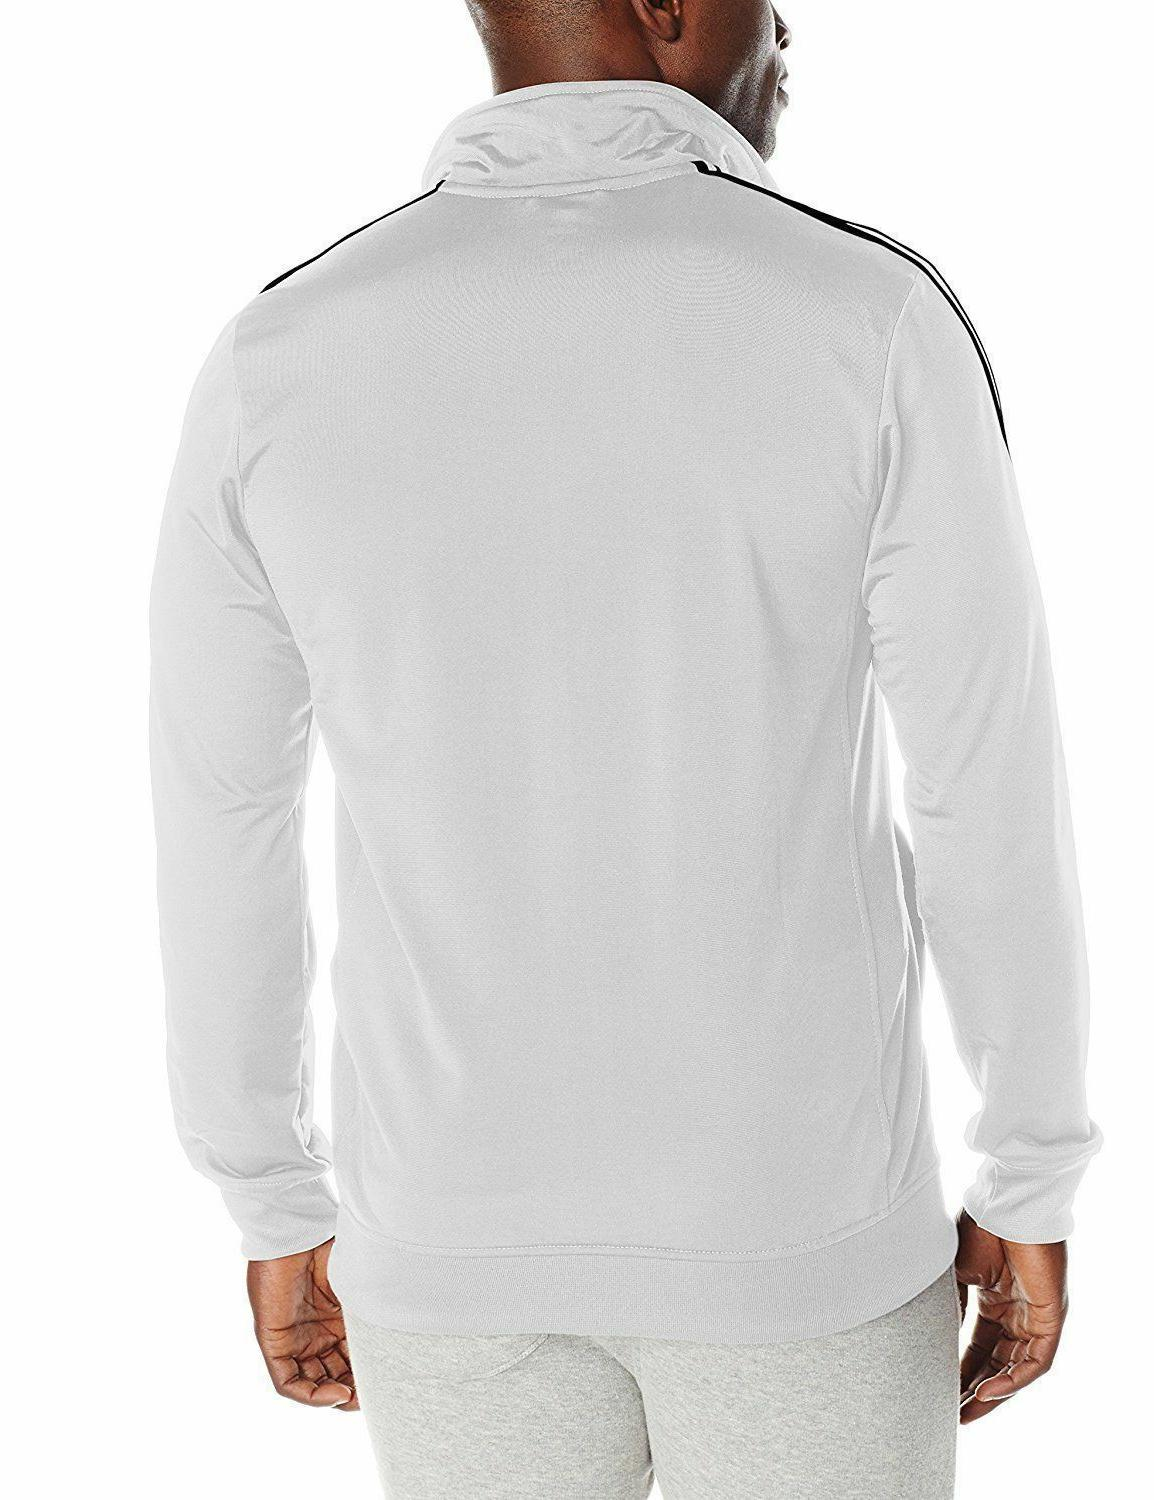 Adidas Essential Zip Track Jacket A Size And